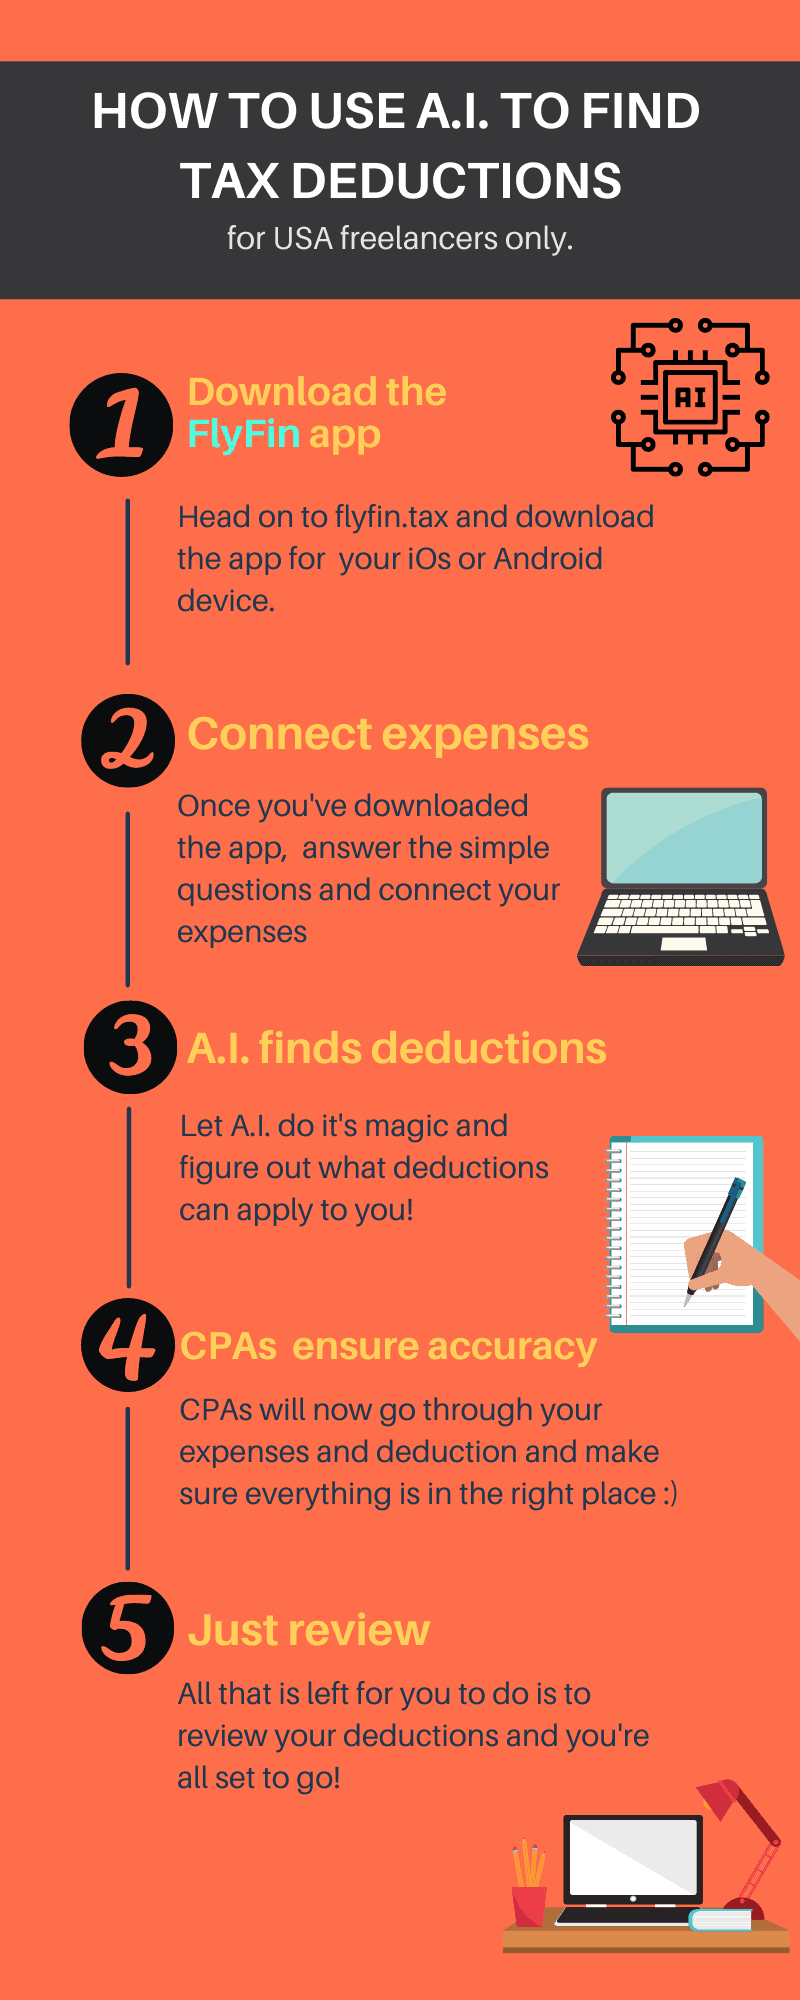 Can A.I. find tax deductions for freelancers automatically